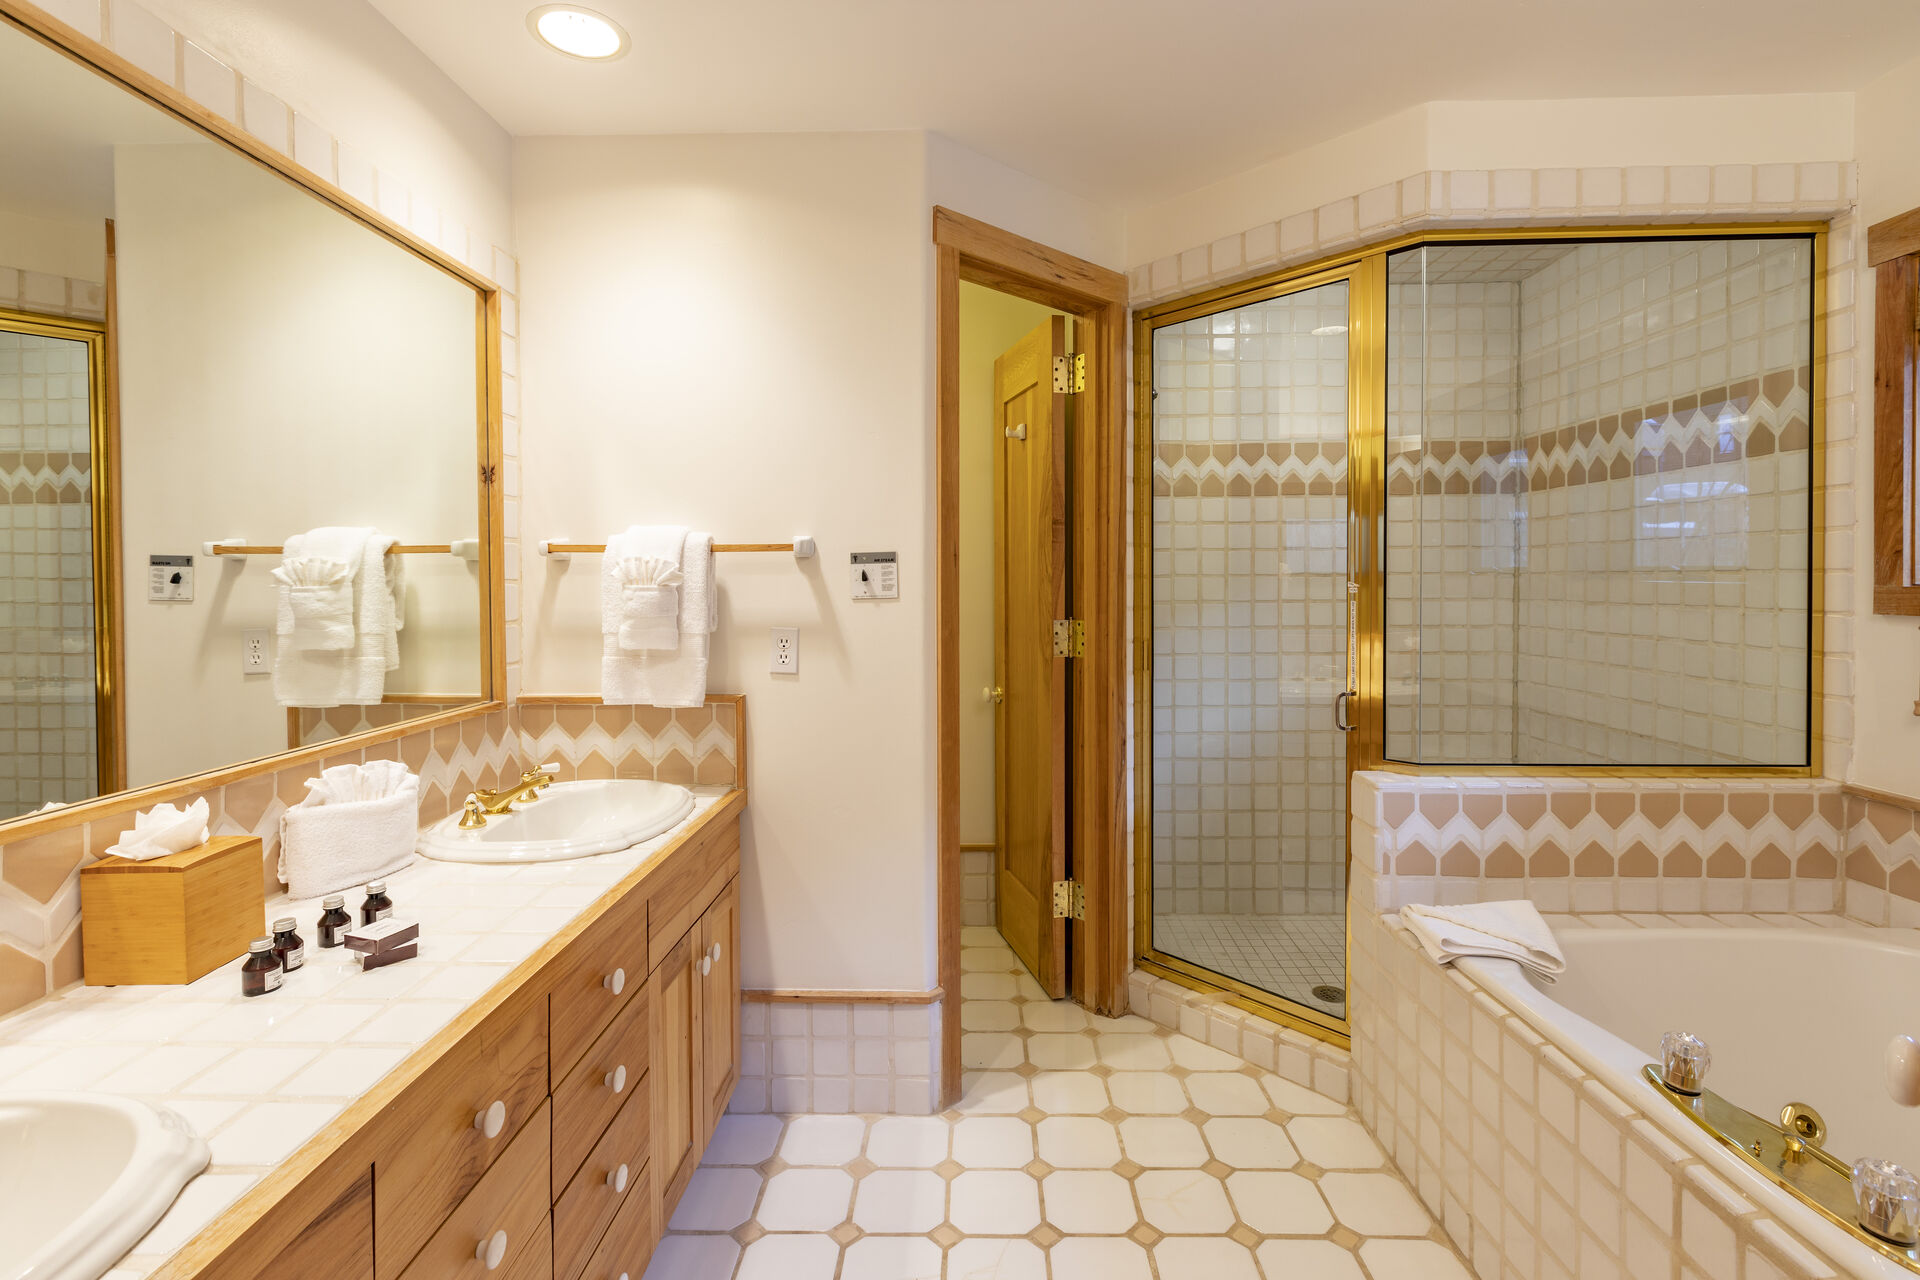 A bathroom in this 3 bedroom condo in Telluride with walk-in shower, separate toilet room, a spa tub, and double vanity sink.